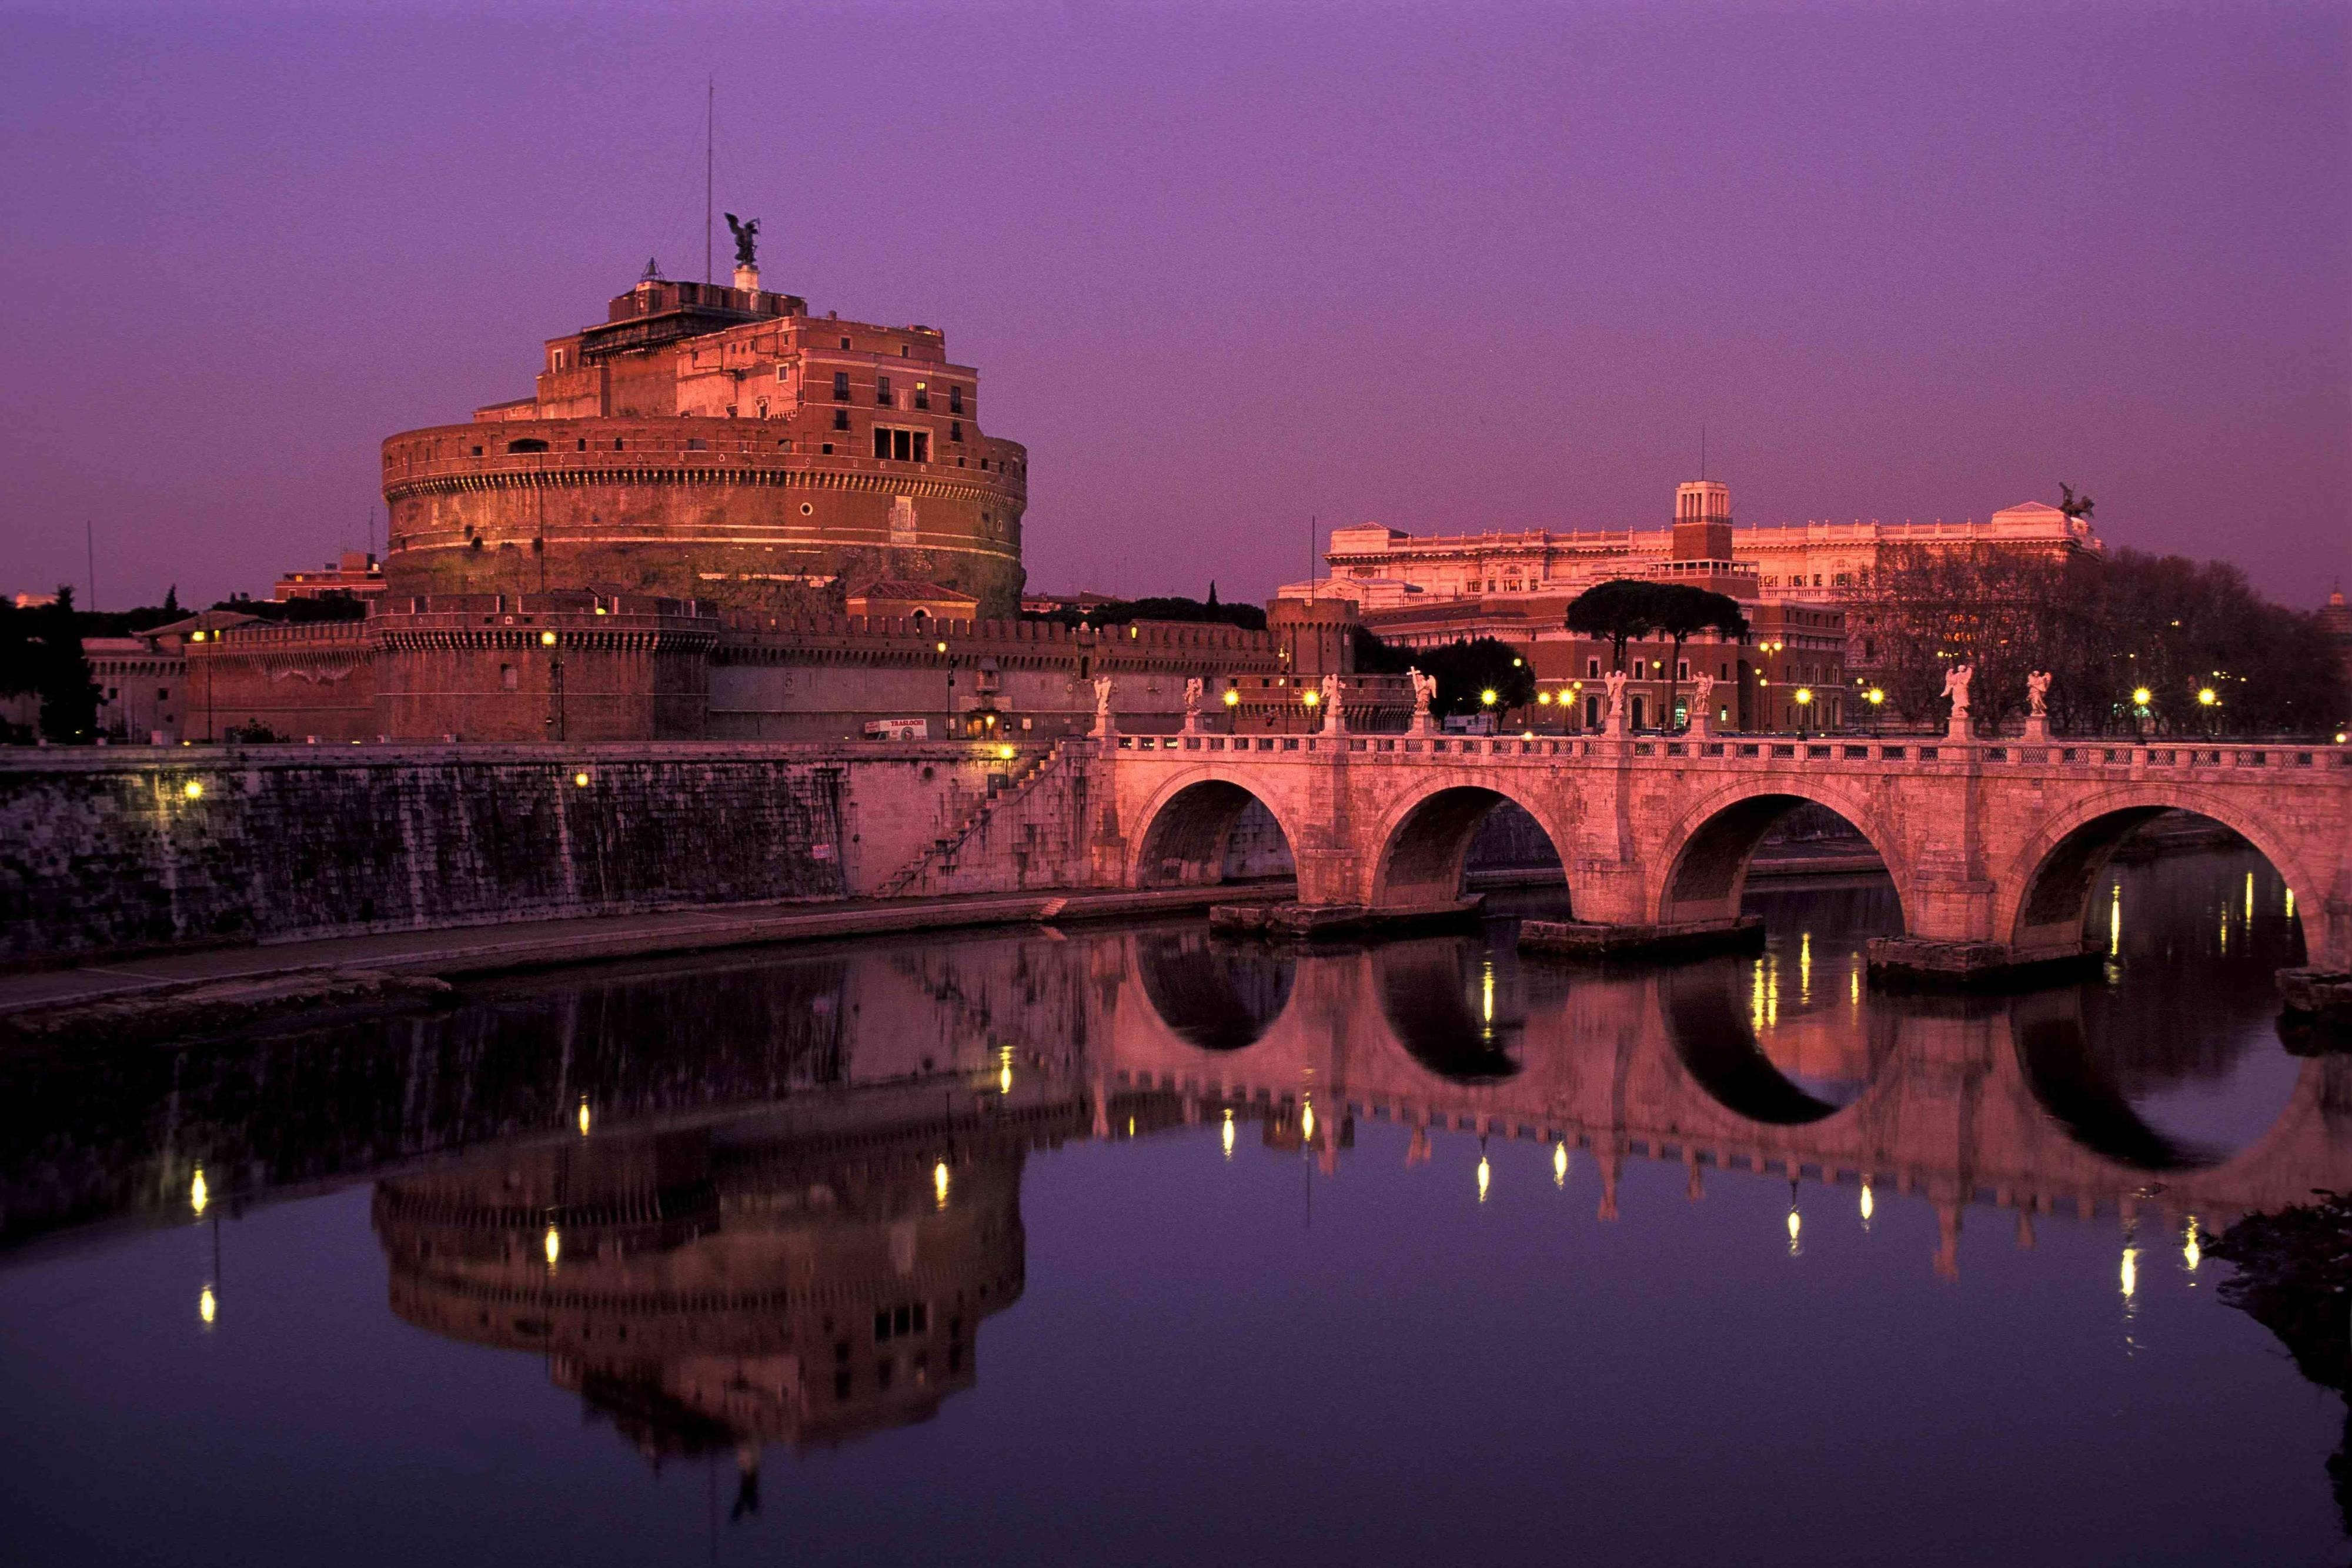 Castel Sant'Angelo view from the Tiber river in Rome, Italy